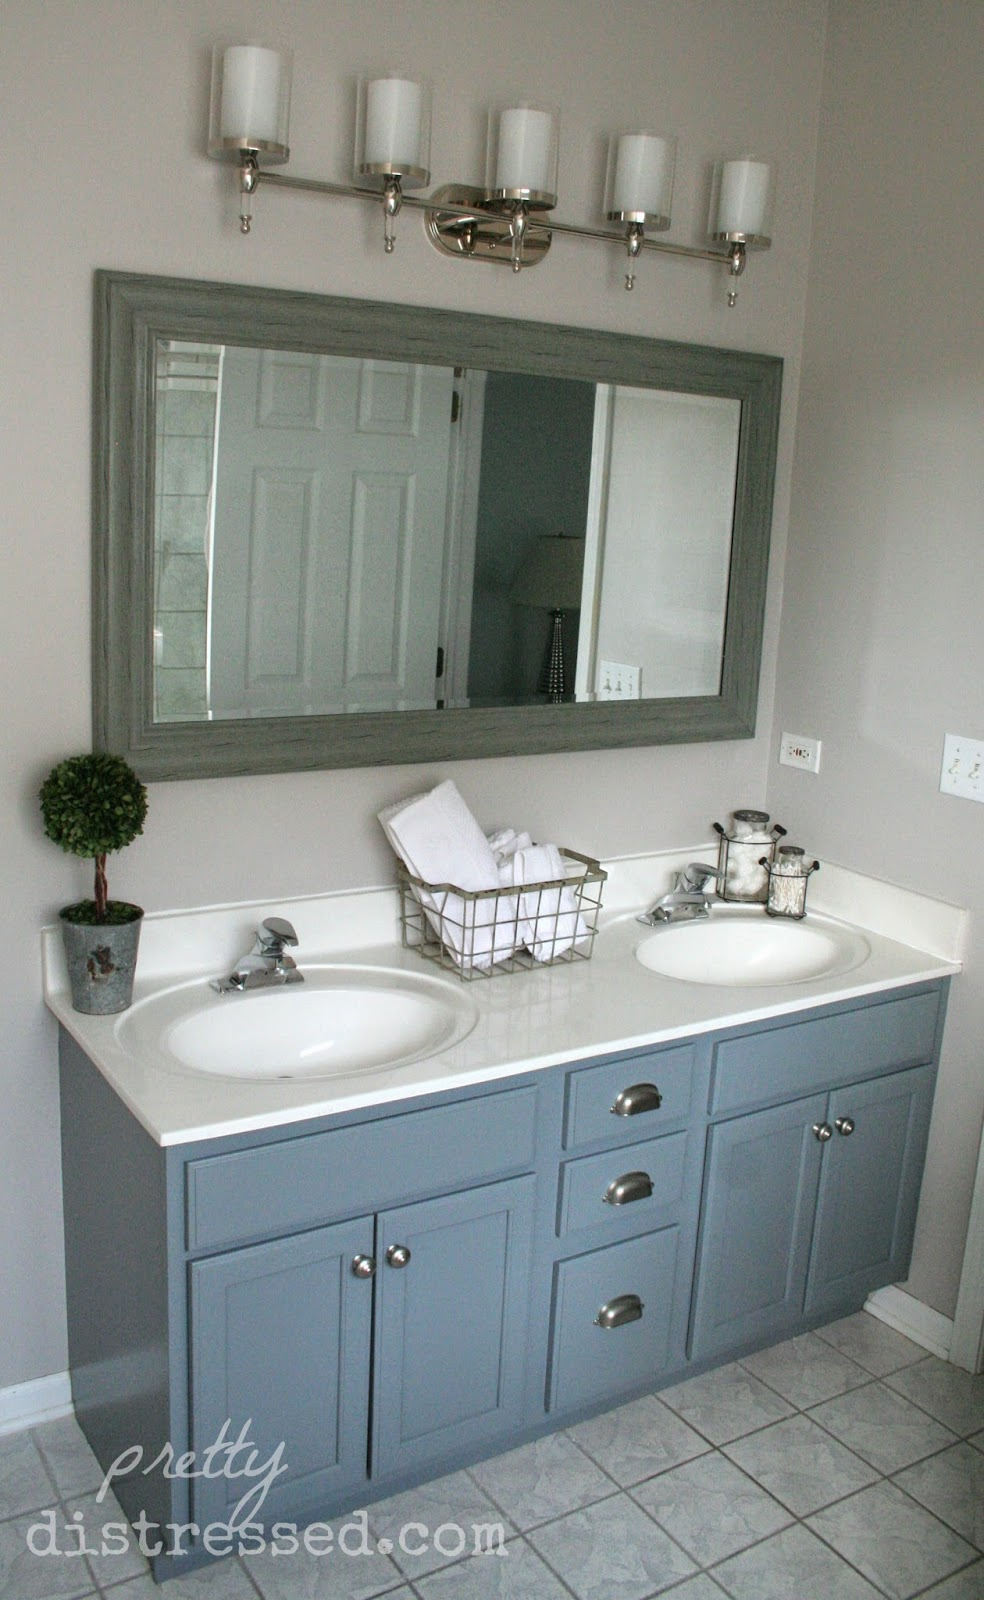 Pretty distressed bathroom vanity makeover with latex paint Paint bathroom cabinets